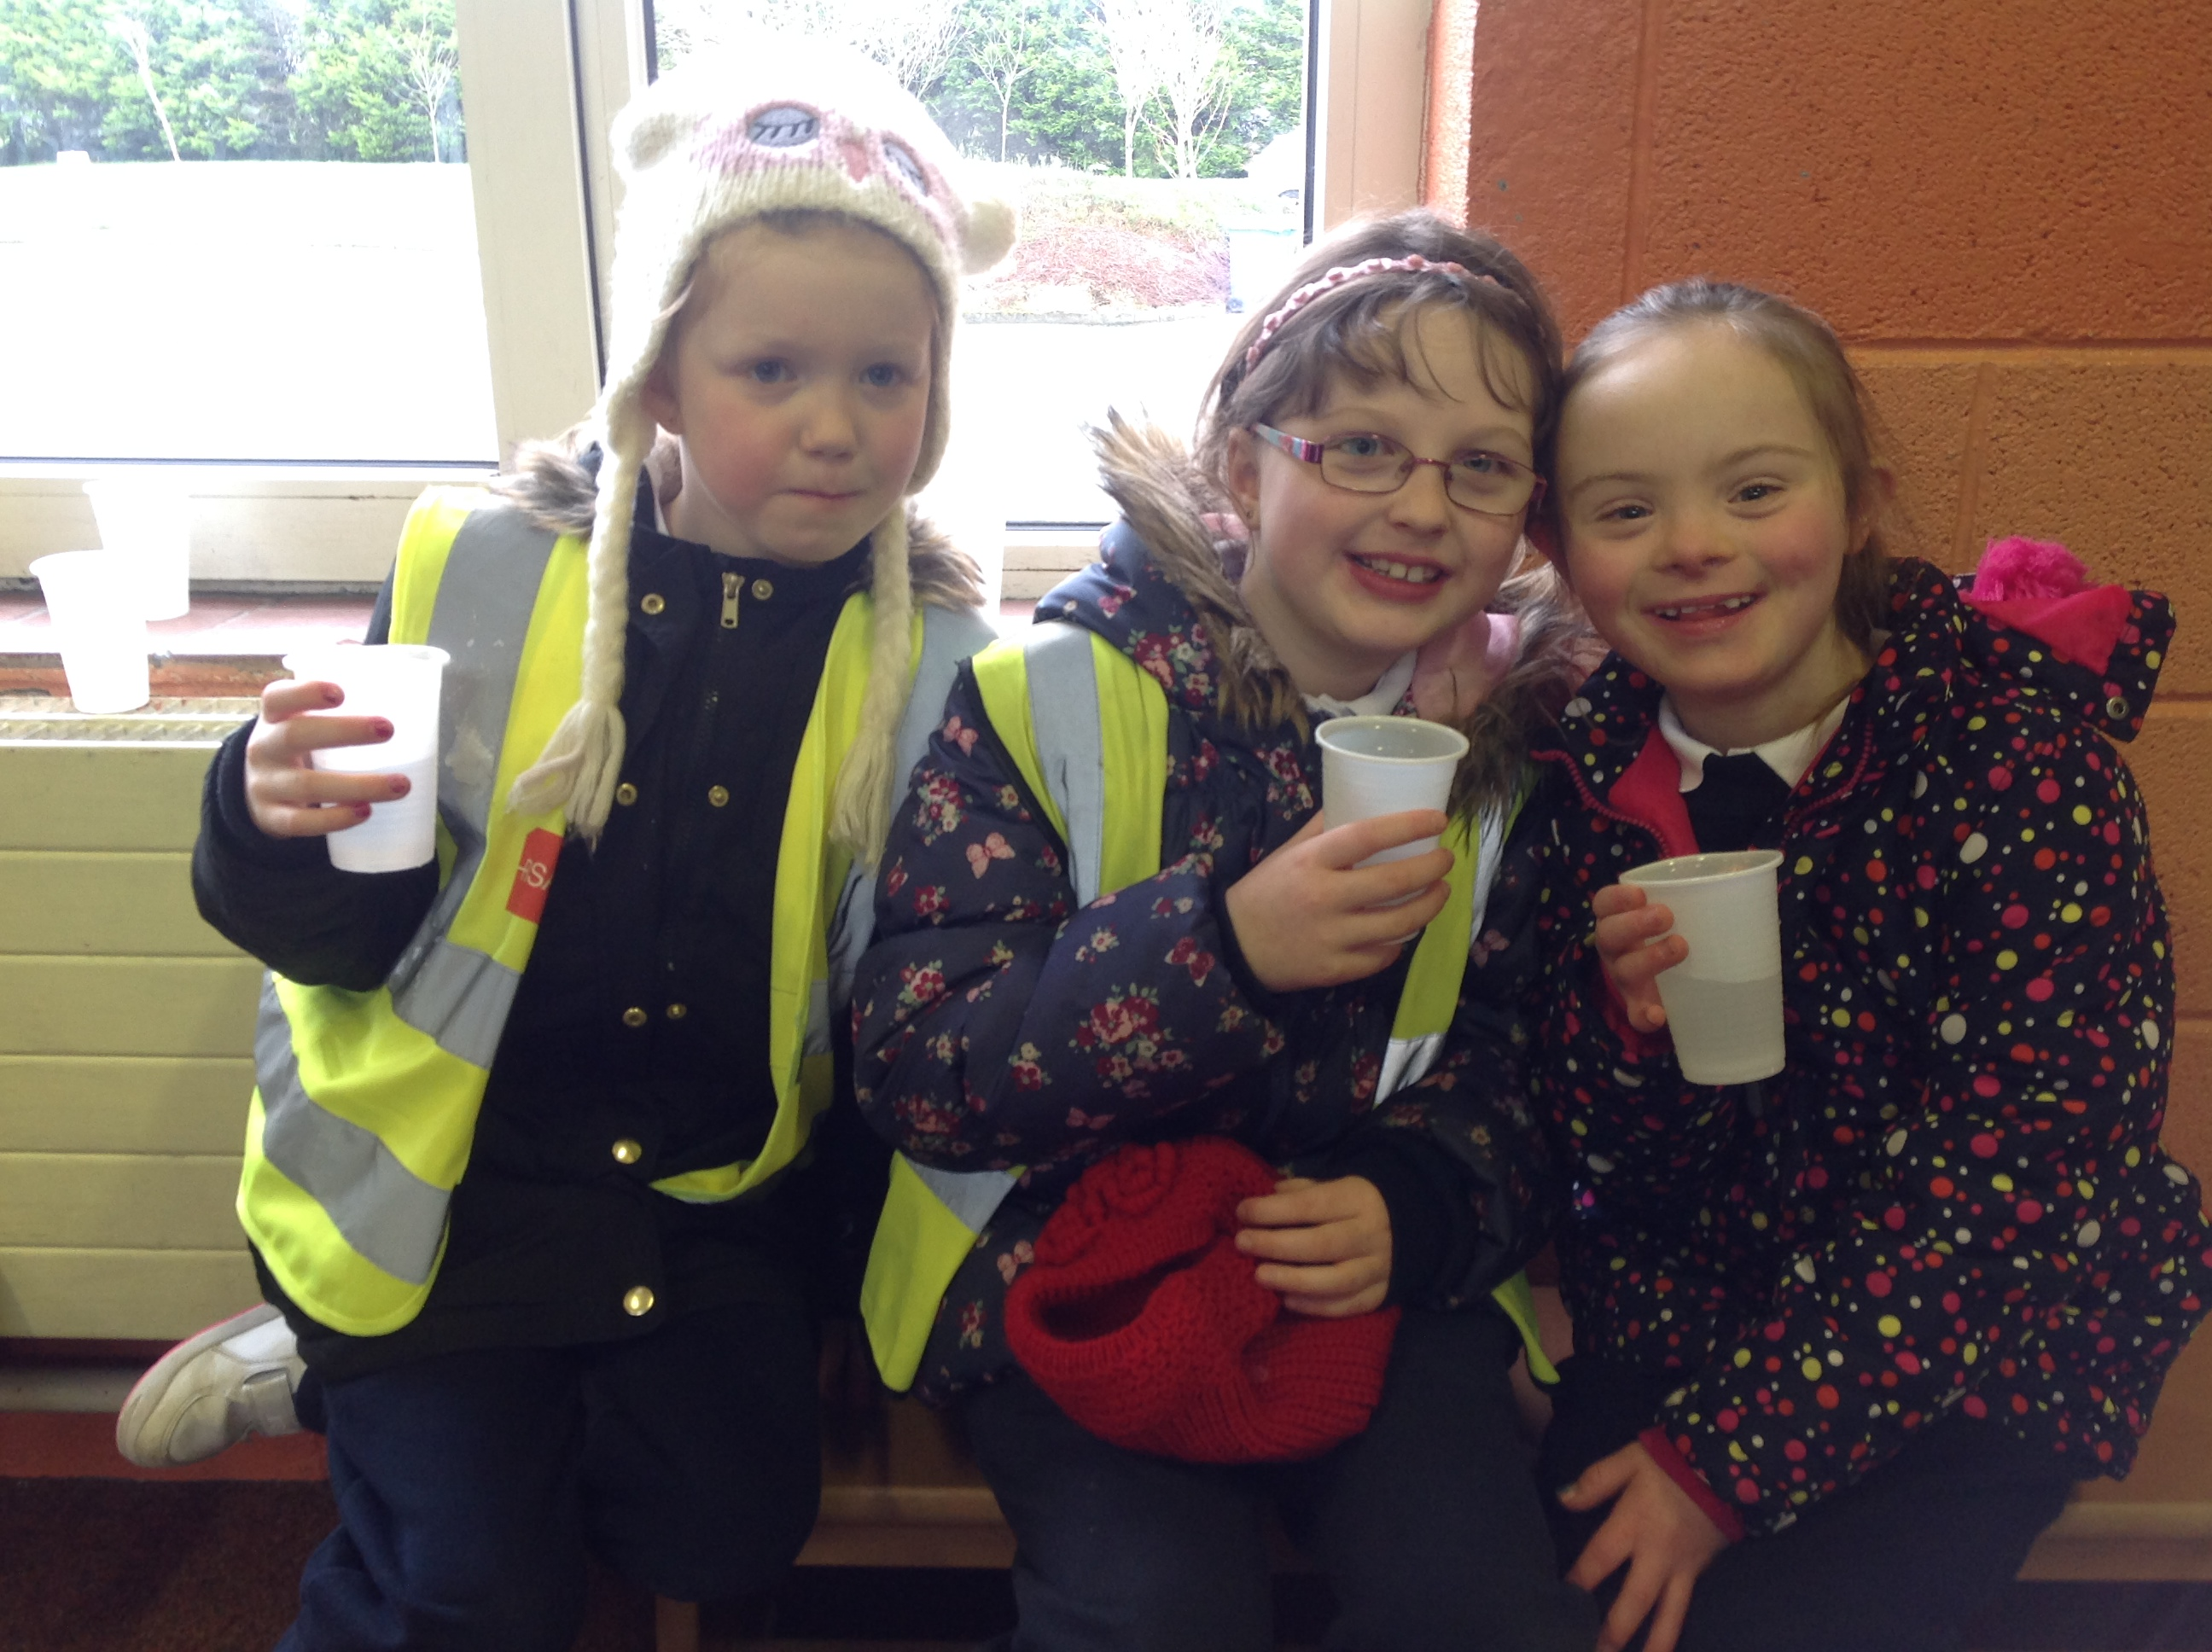 We enjoyed our refreshments after all of the exercise